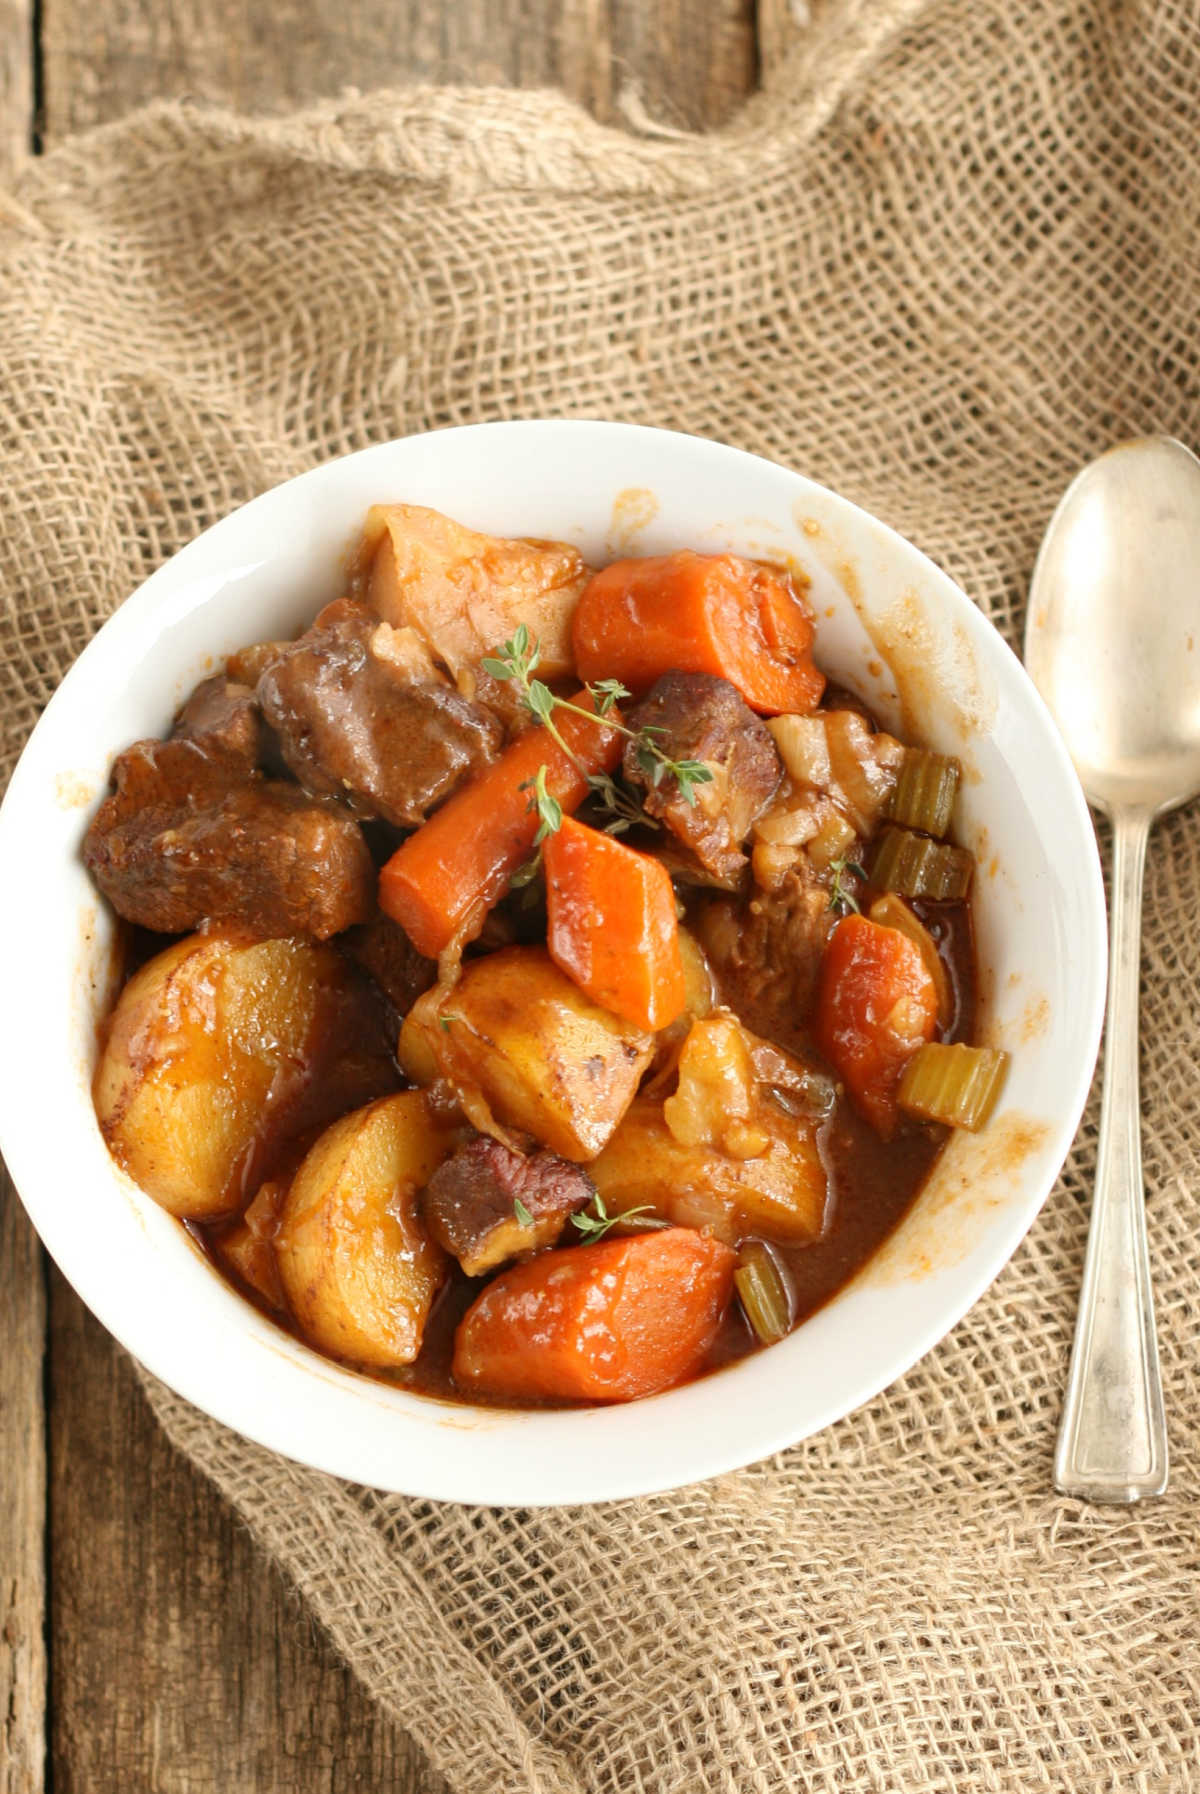 Beef stew with carrots, potatoes, celery, in small white bowl, spoon on right.